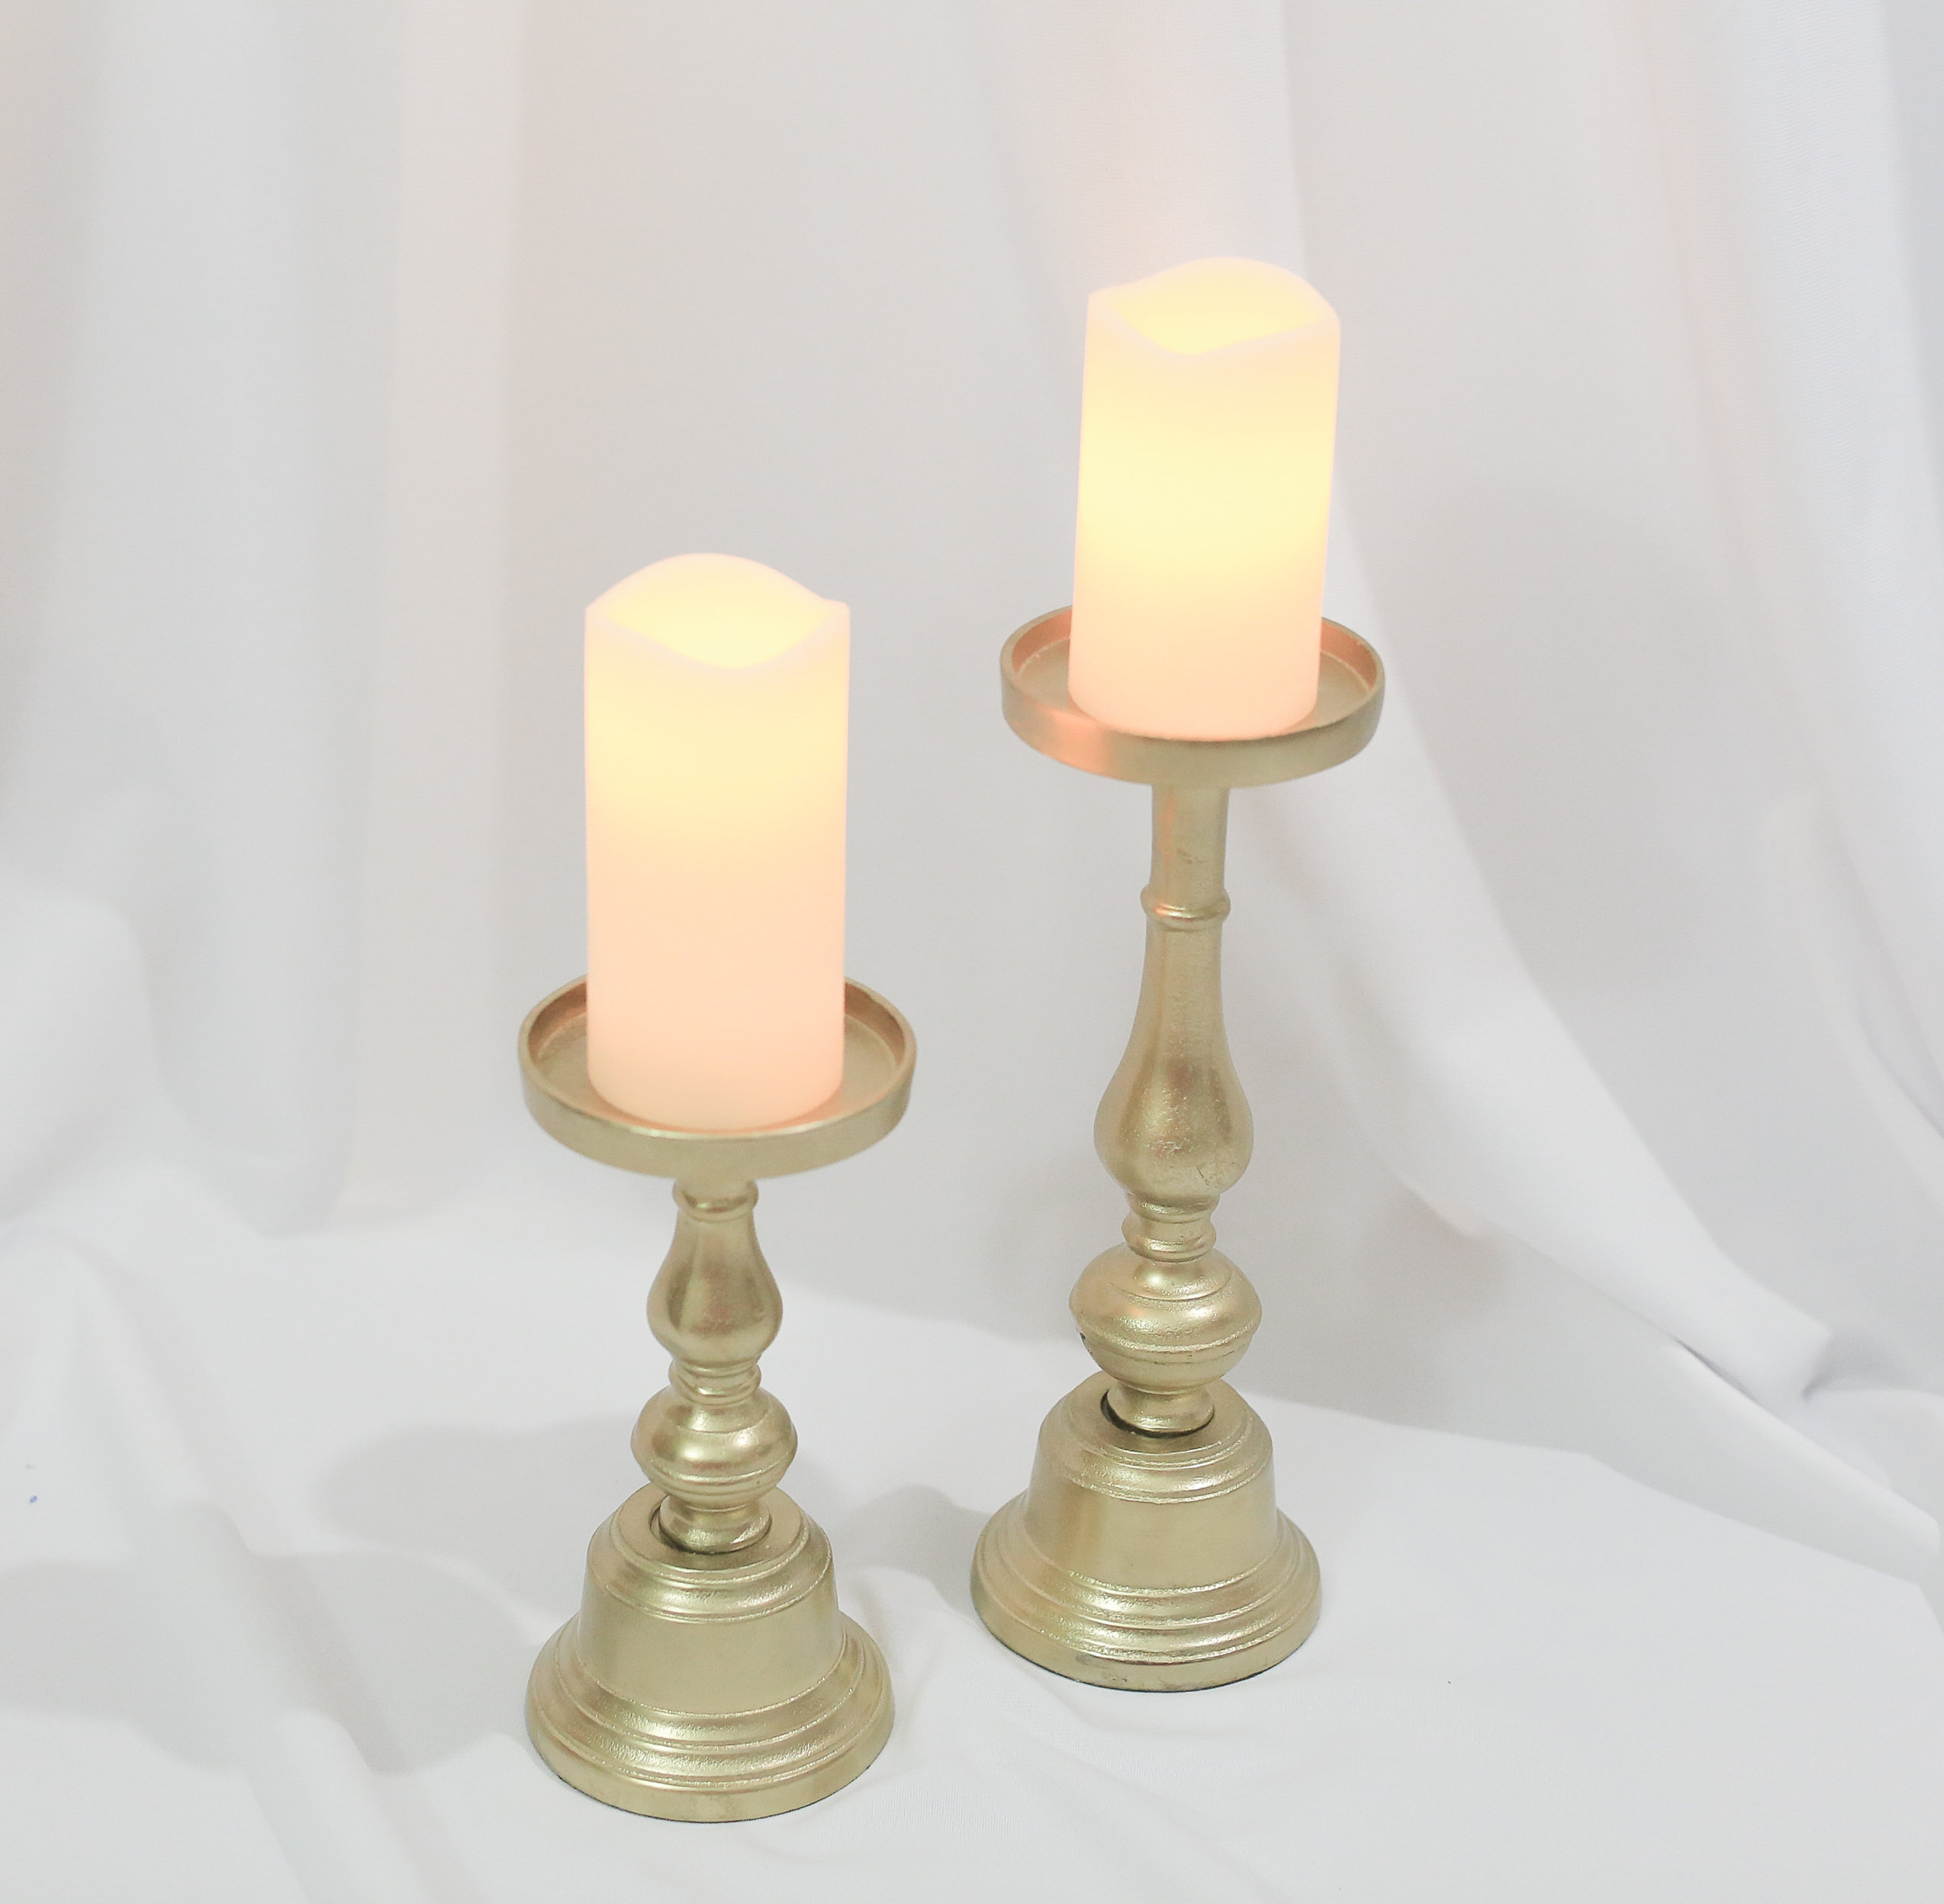 Loisa Gold Pillar Candle Holders Set of 2 Rental VintageBash